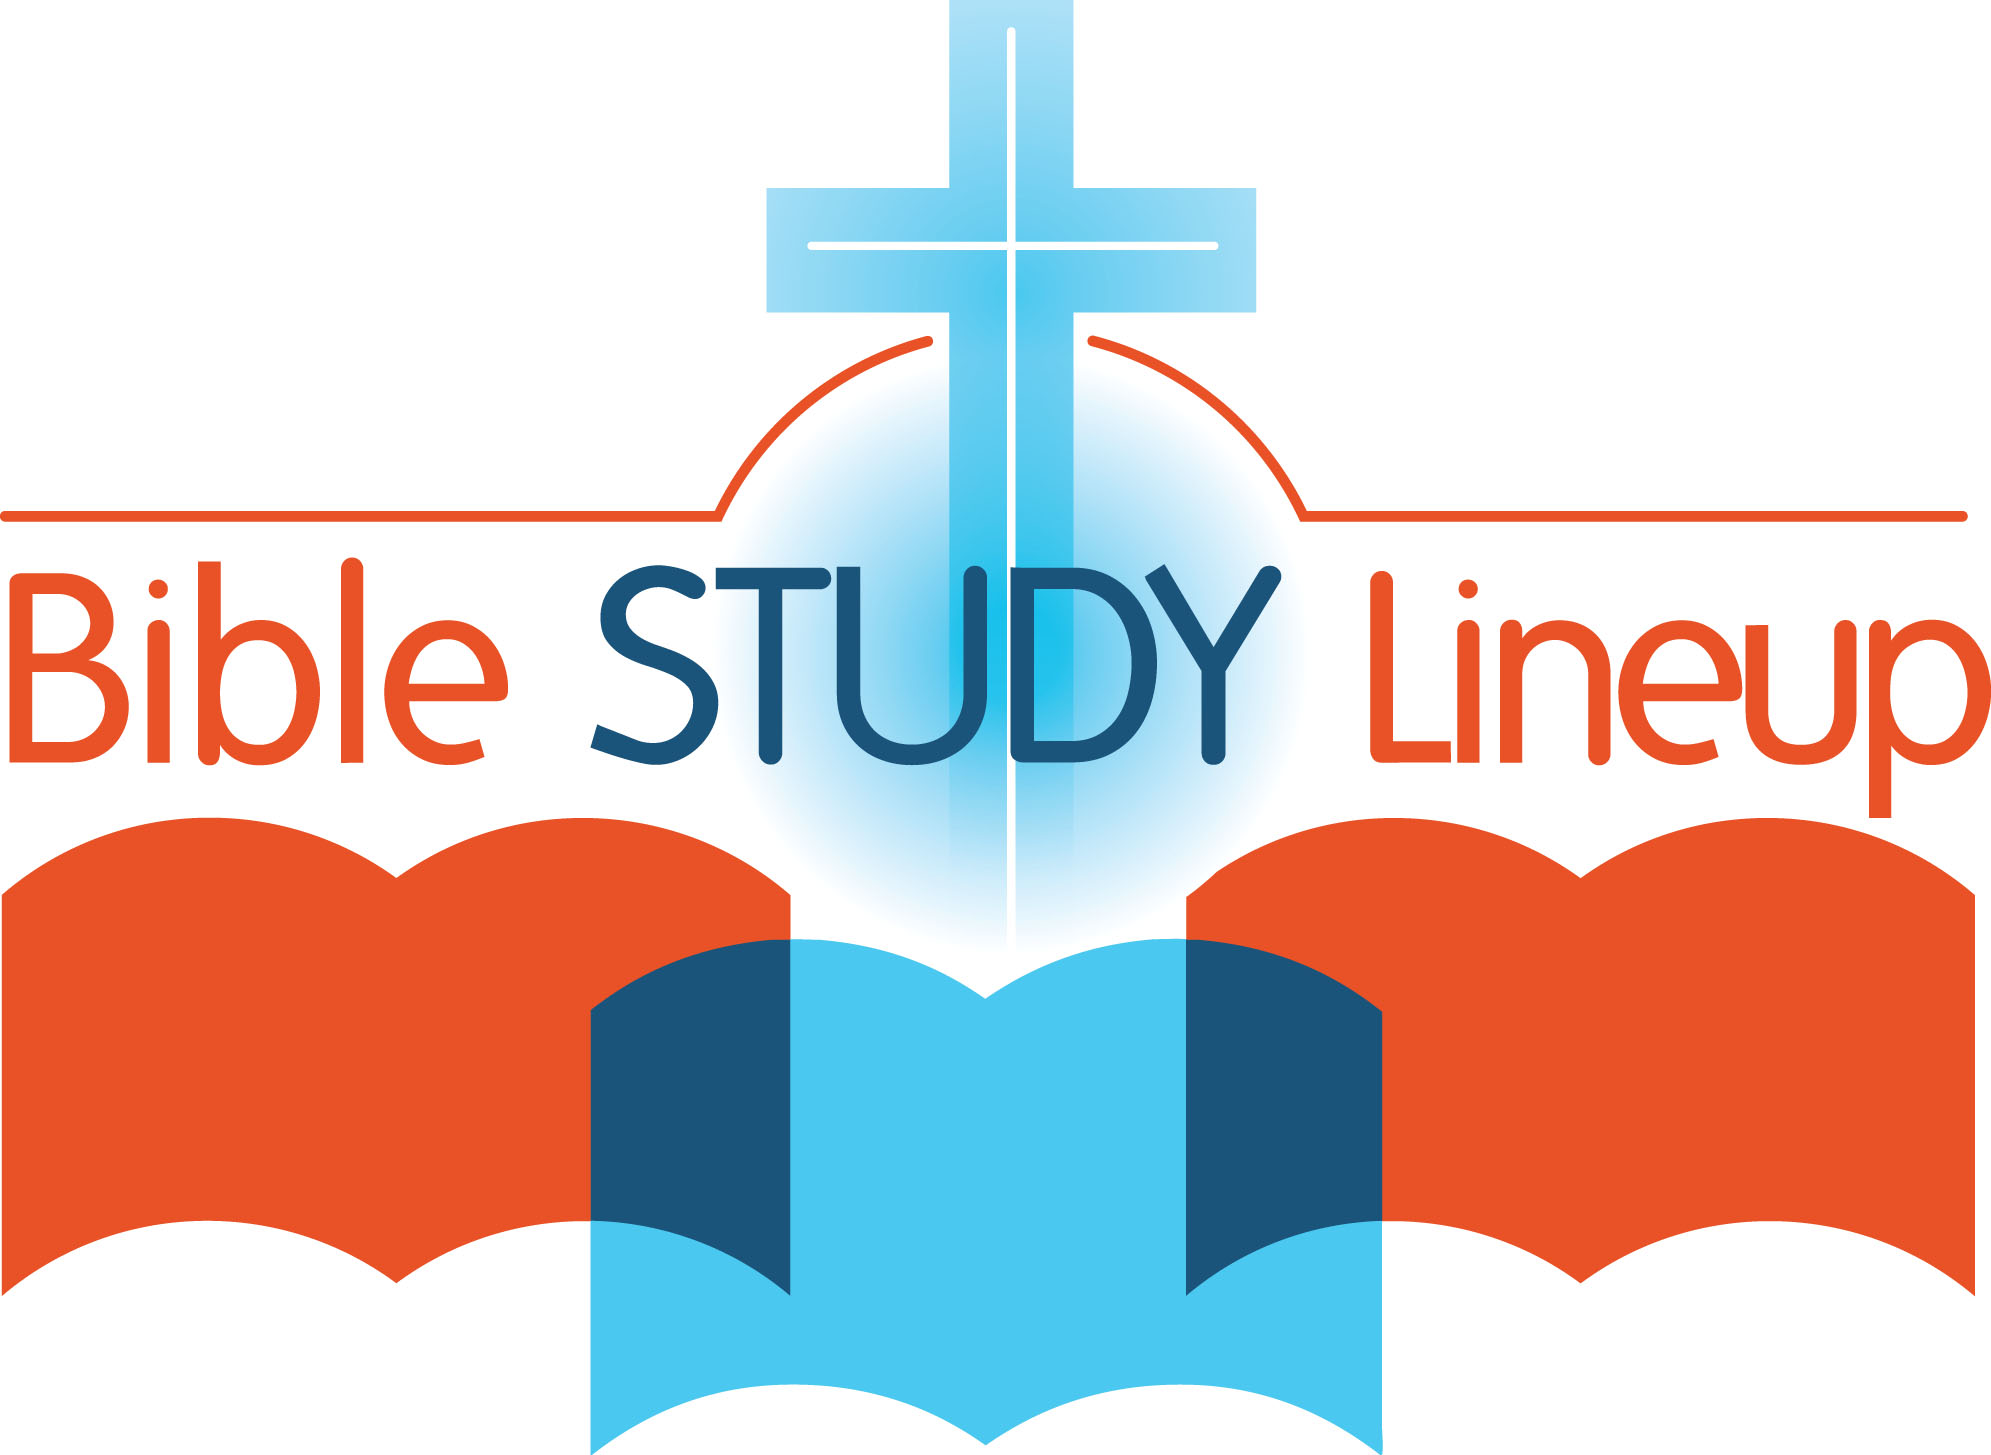 /clientimages/31672/bible%20study%20lineup.jpg